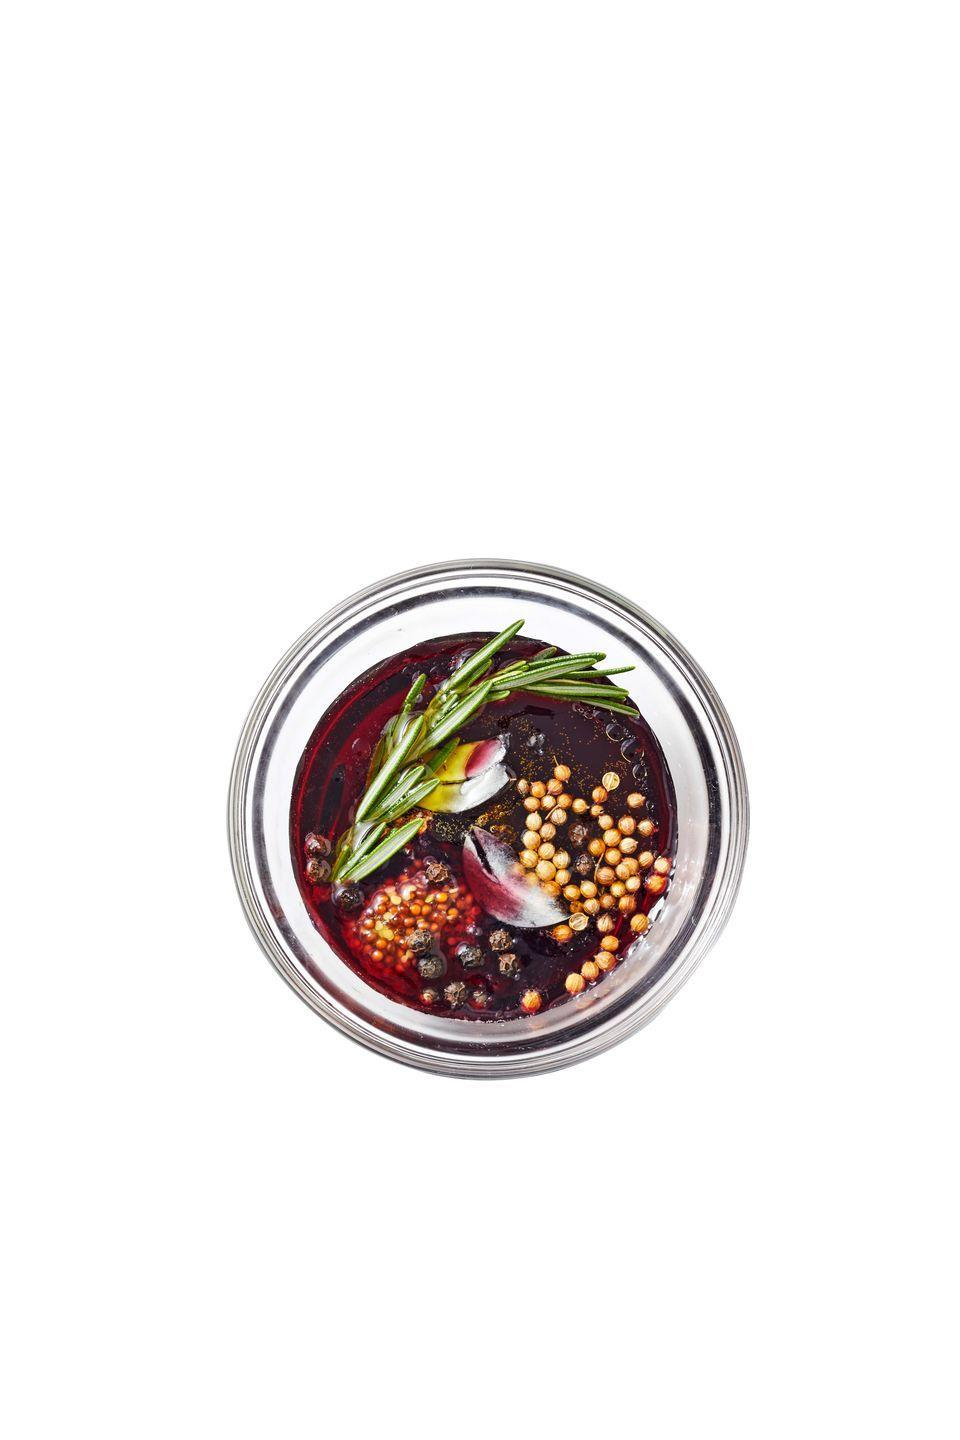 """<p>A touch of red wine balances the sweetness in this flavor-loaded pick.</p><p><em><a href=""""https://www.goodhousekeeping.com/food-recipes/a36232161/balsamic-rosemary-marinade-recipe/"""" rel=""""nofollow noopener"""" target=""""_blank"""" data-ylk=""""slk:Get the recipe for Balsamic Rosemary Marinade »"""" class=""""link rapid-noclick-resp"""">Get the recipe for Balsamic Rosemary Marinade »</a></em></p>"""